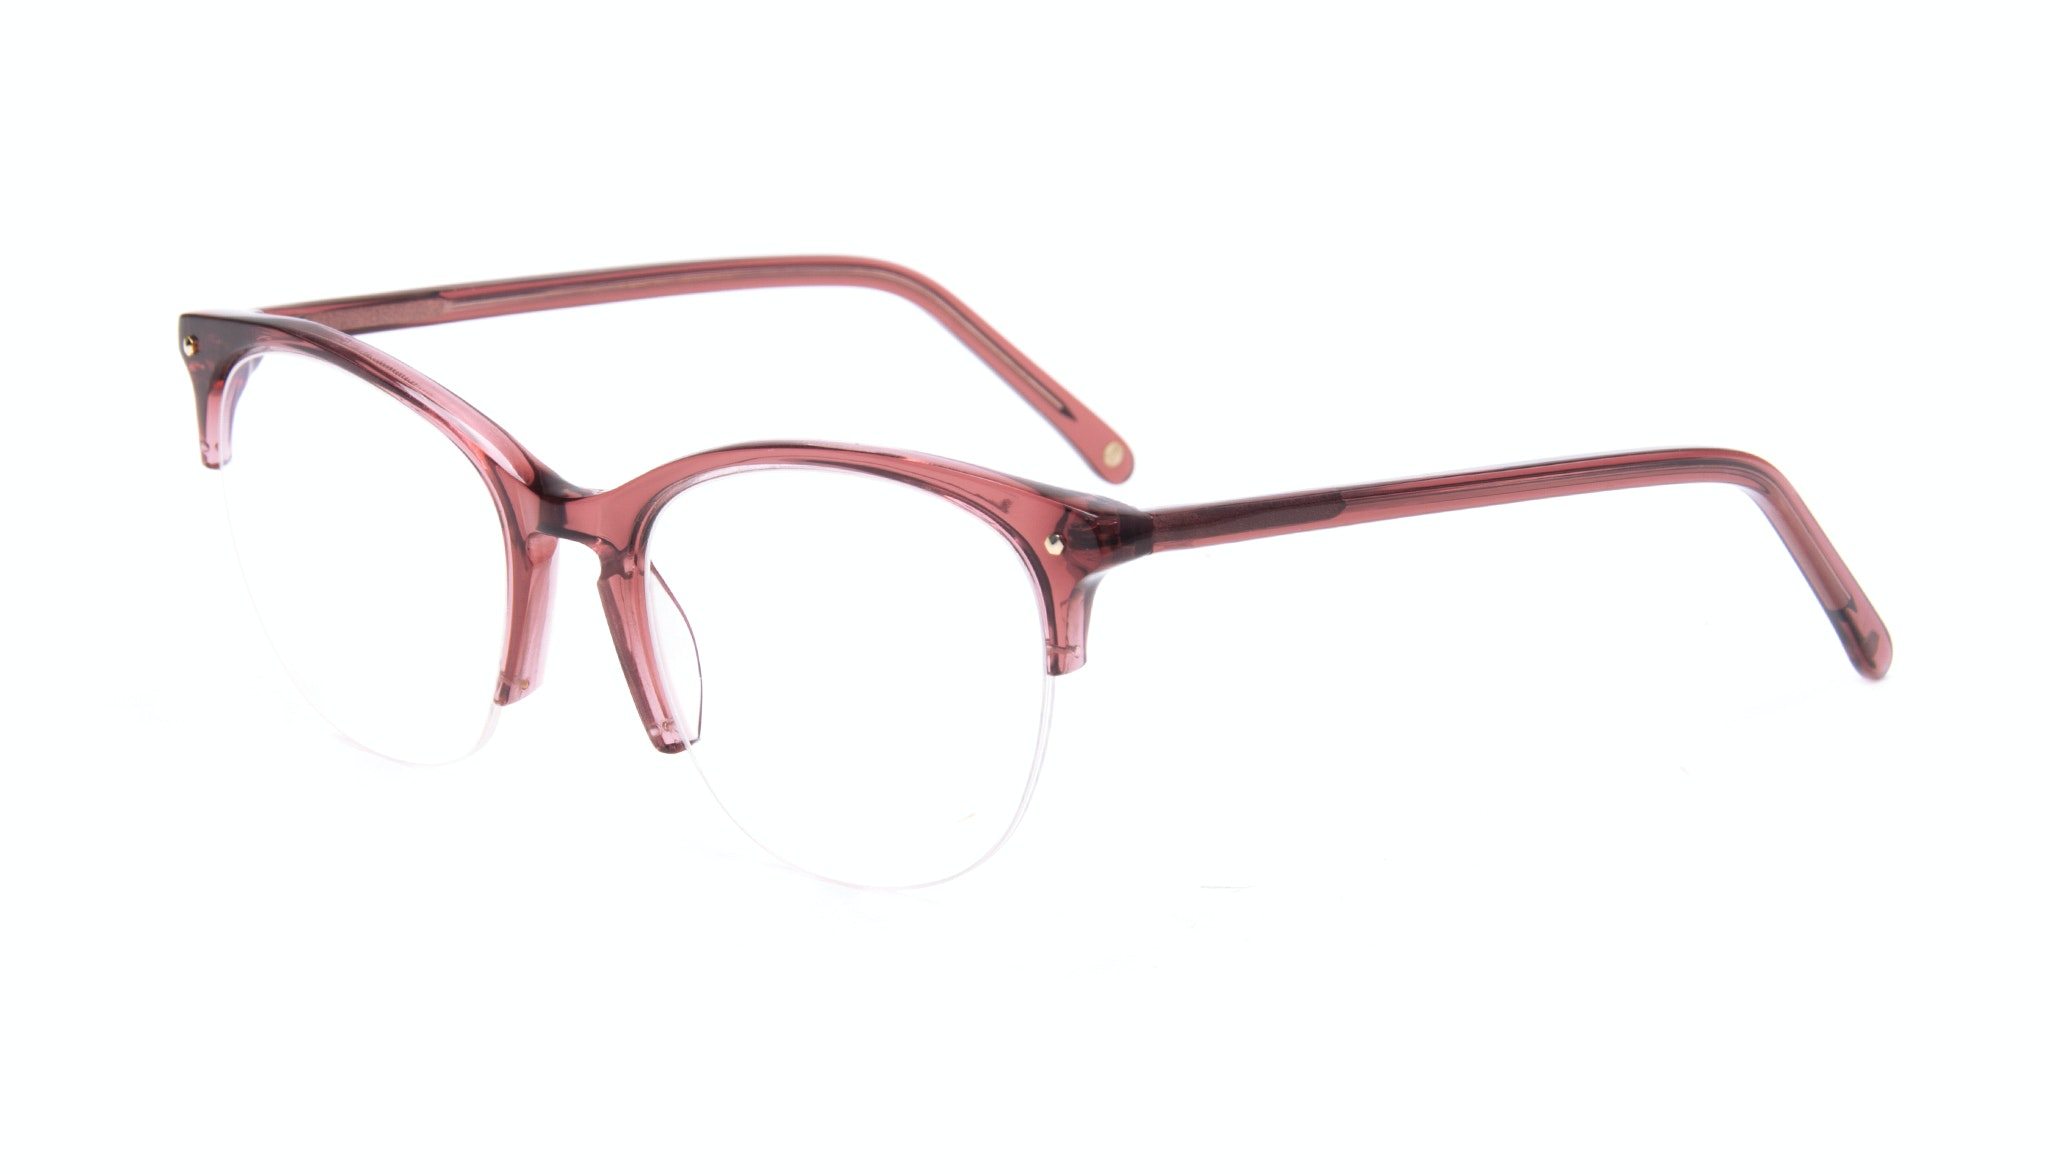 Affordable Fashion Glasses Rectangle Round Semi-Rimless Eyeglasses Women Nadine Light Winegum Tilt